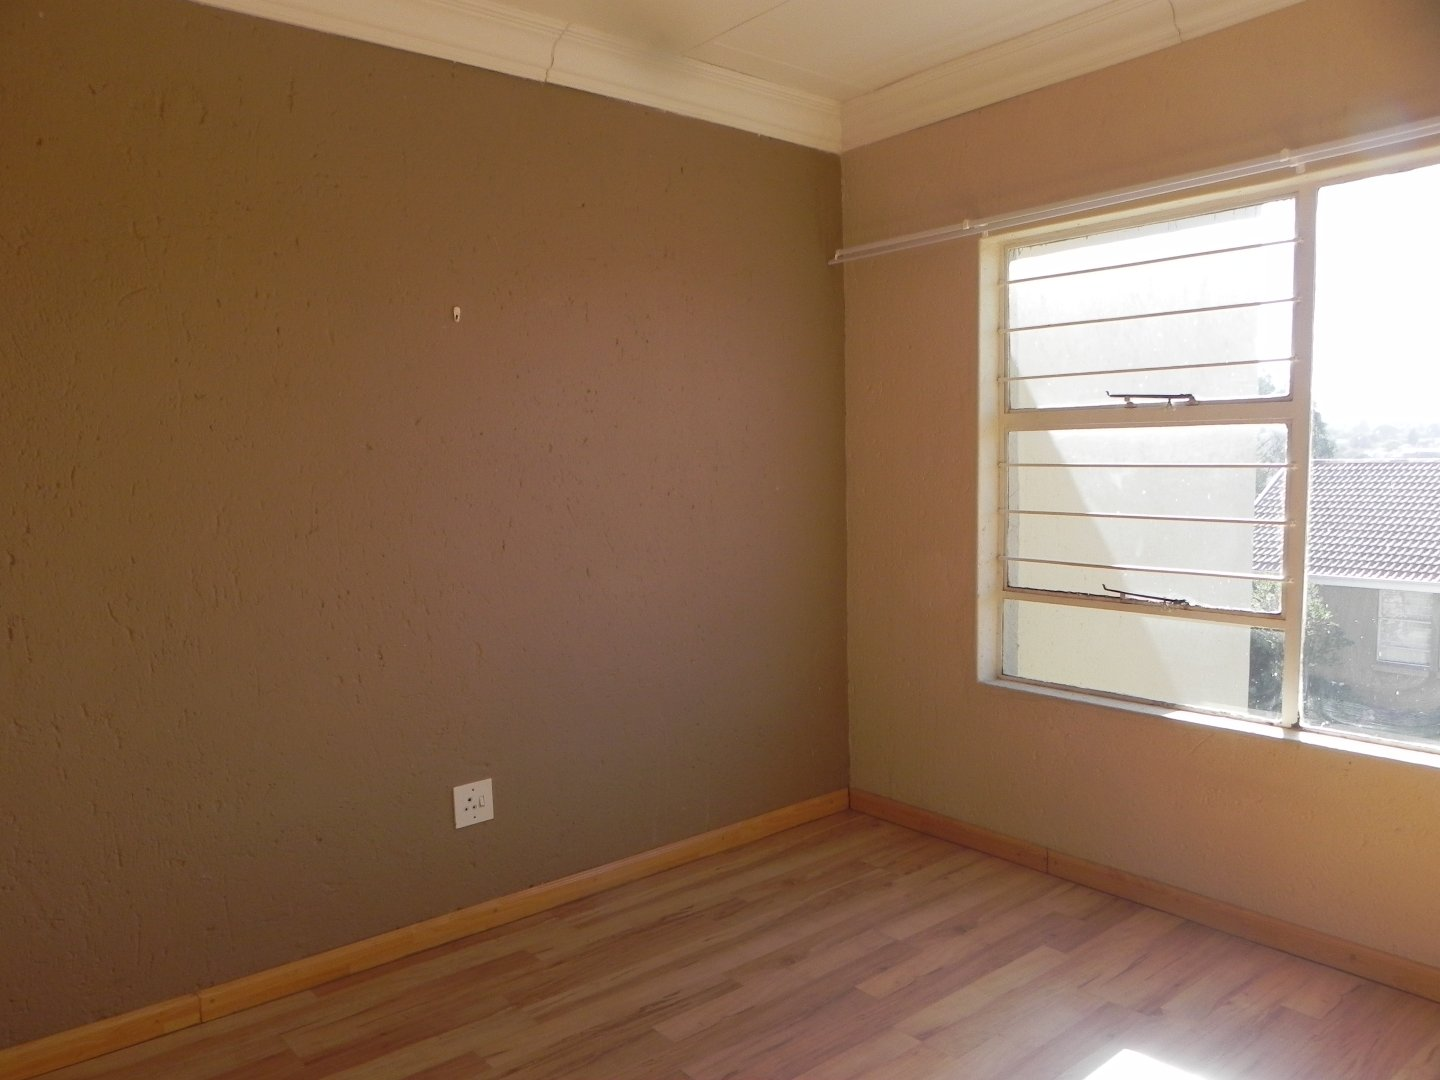 Krugersdorp, Kenmare Property  | Houses For Sale Kenmare, Kenmare, Apartment 2 bedrooms property for sale Price:630,000